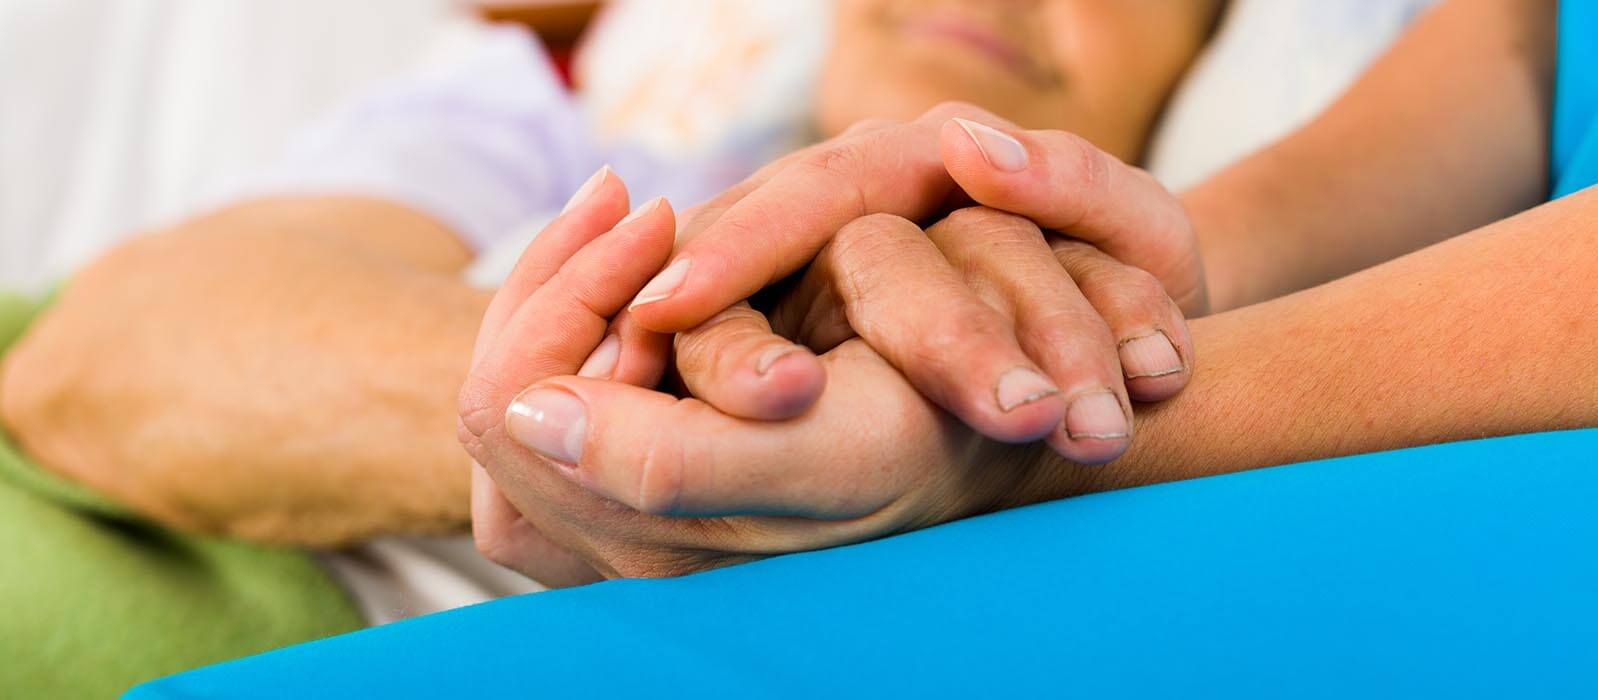 Care home first aid training courses